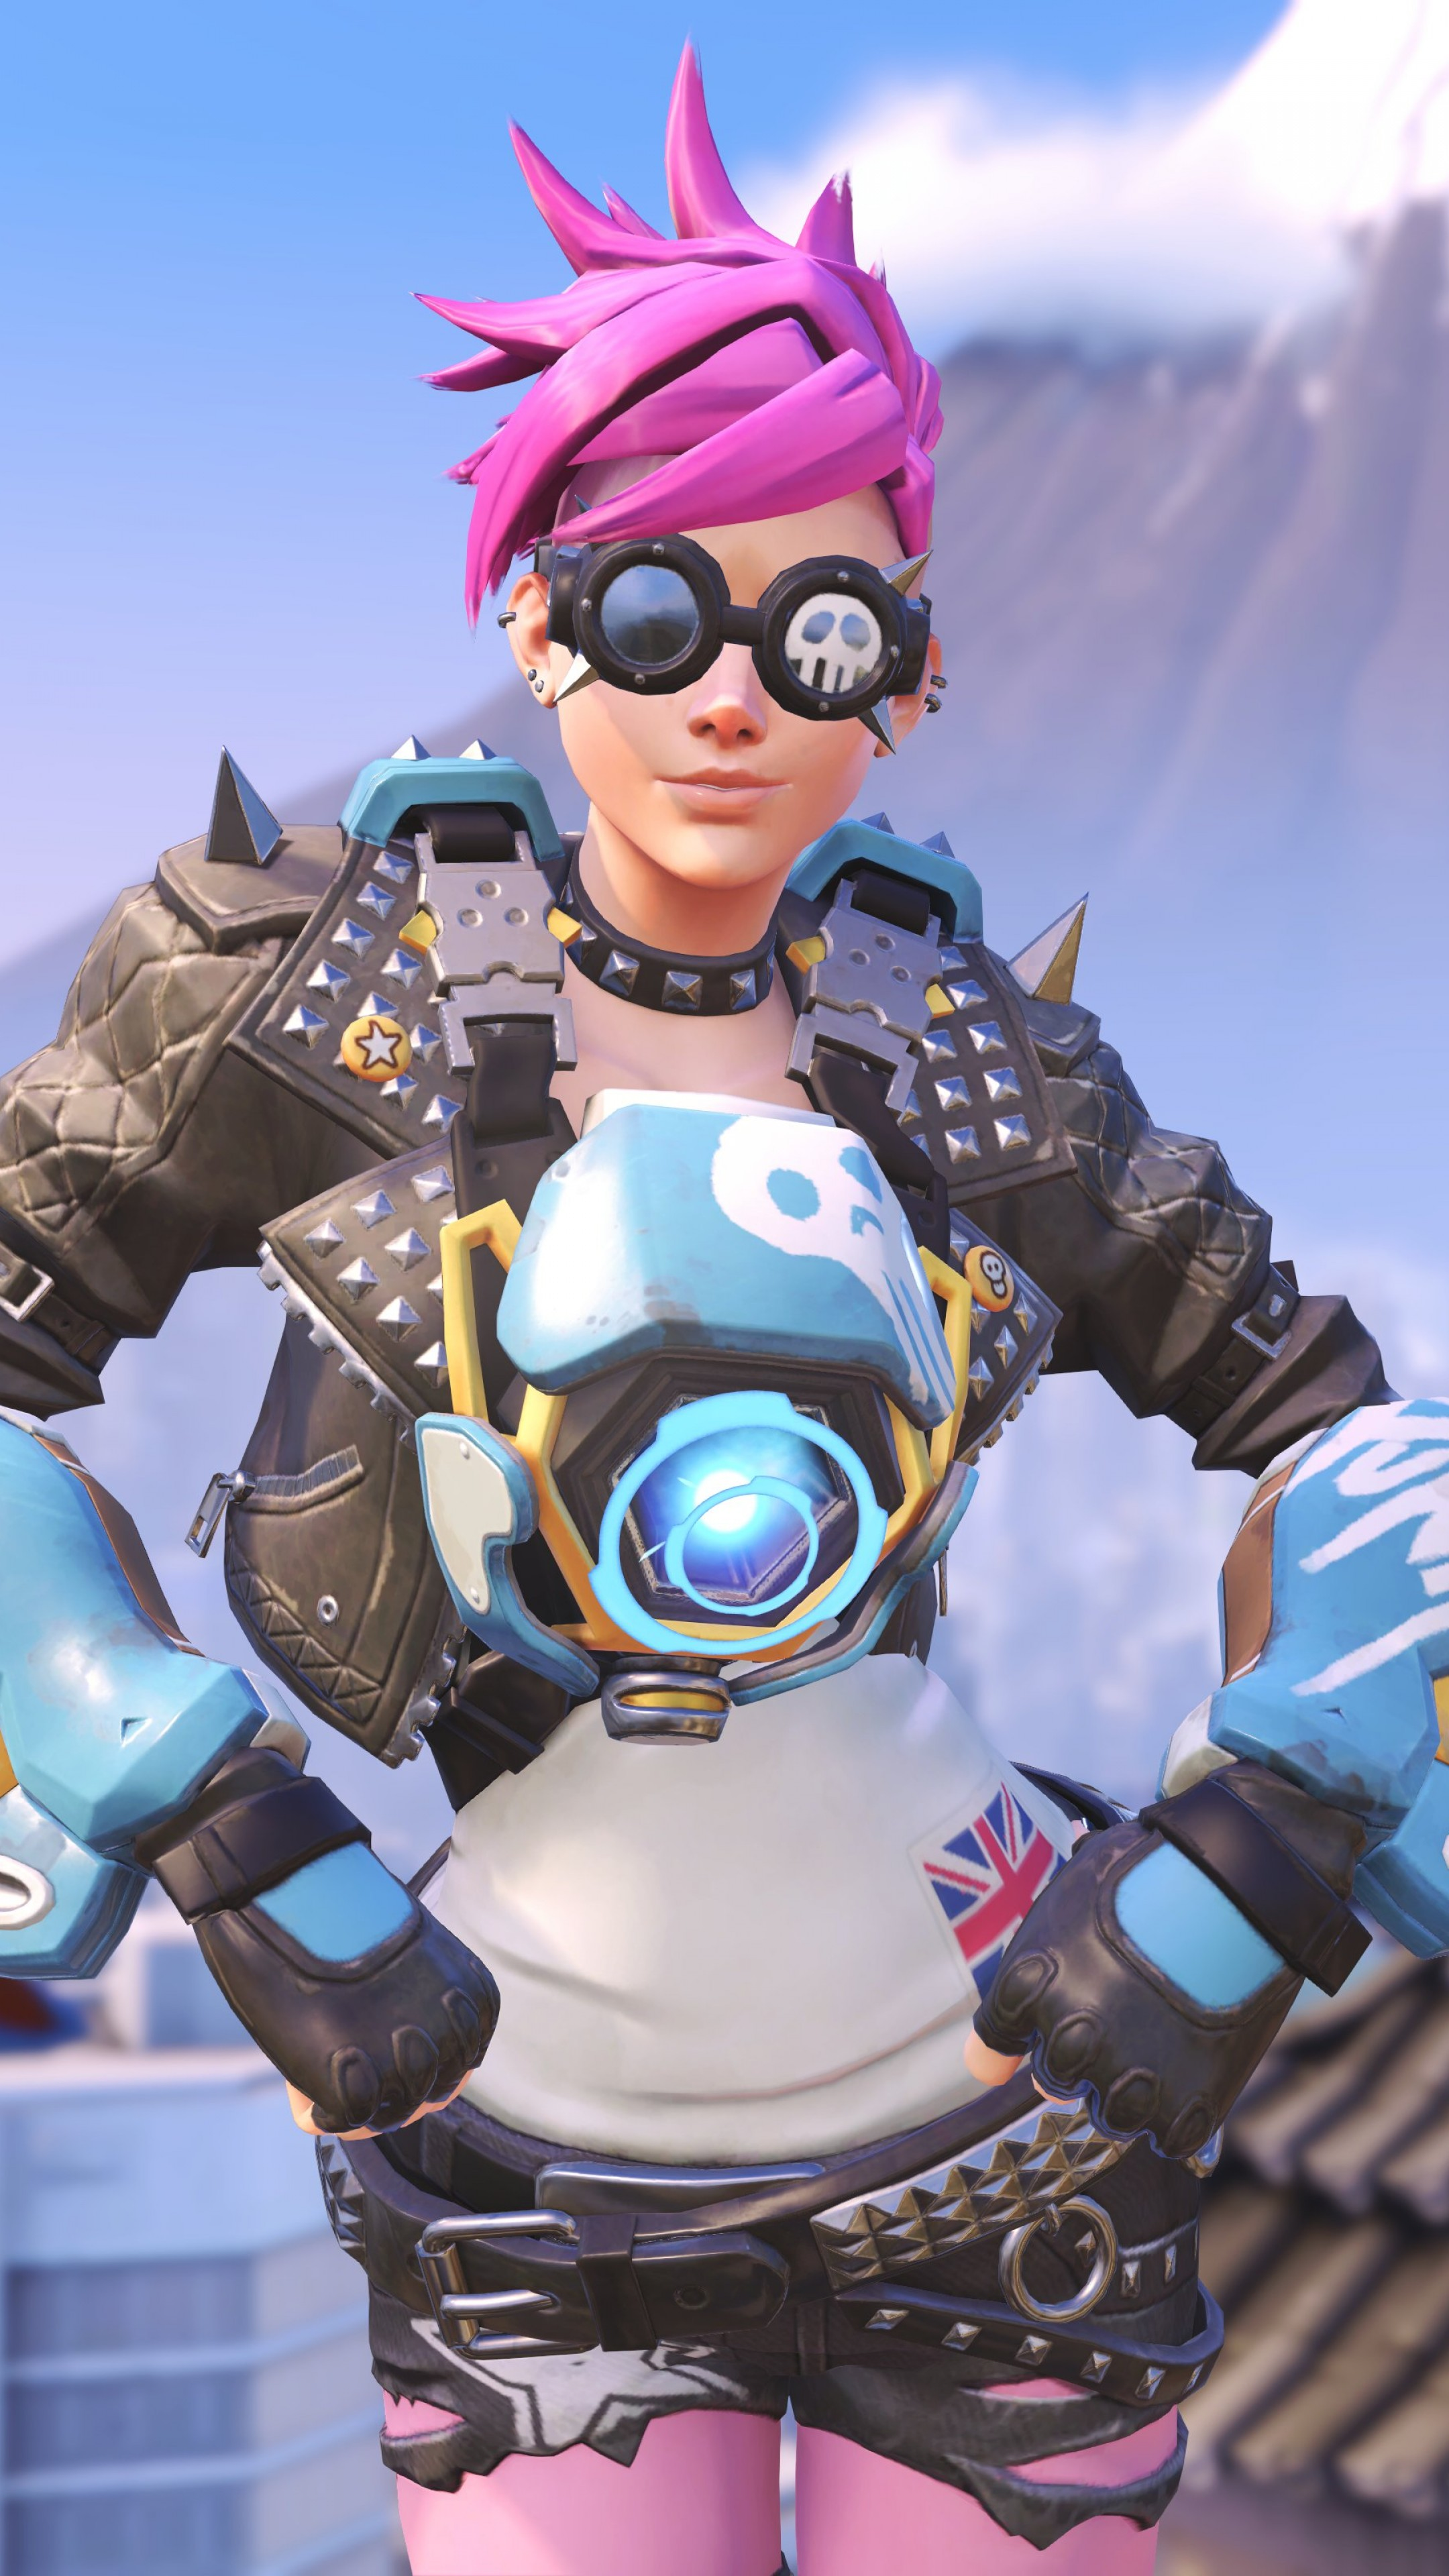 Quotes Iphone Wallpaper Hd Wallpaper Zarya 8k 4k Overwatch Games 9480